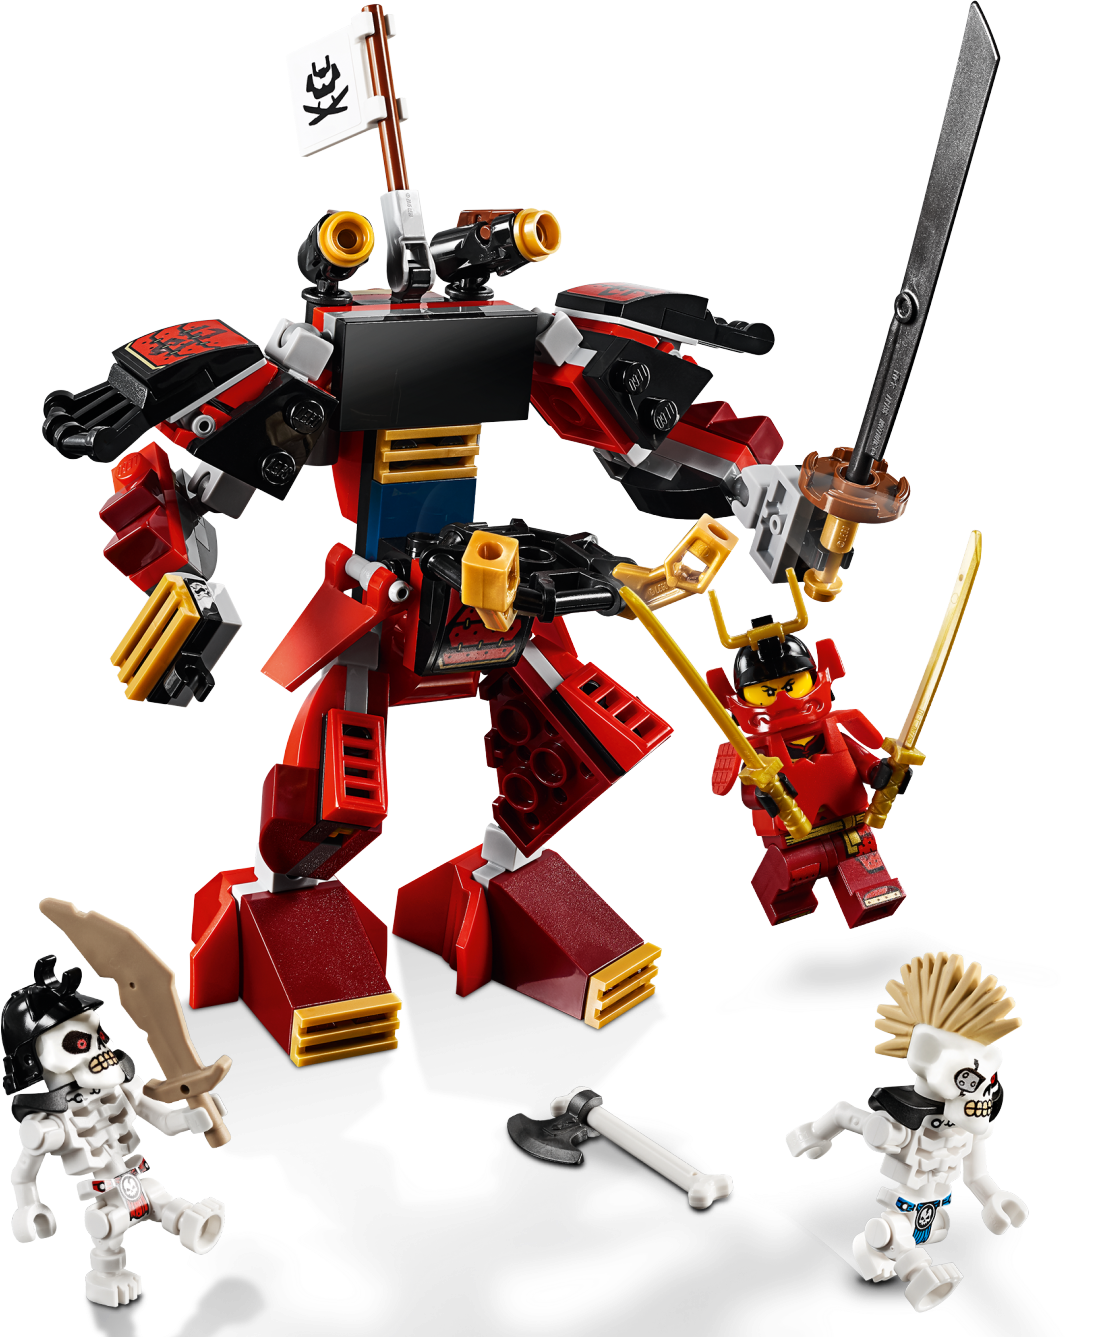 The Samurai Mech